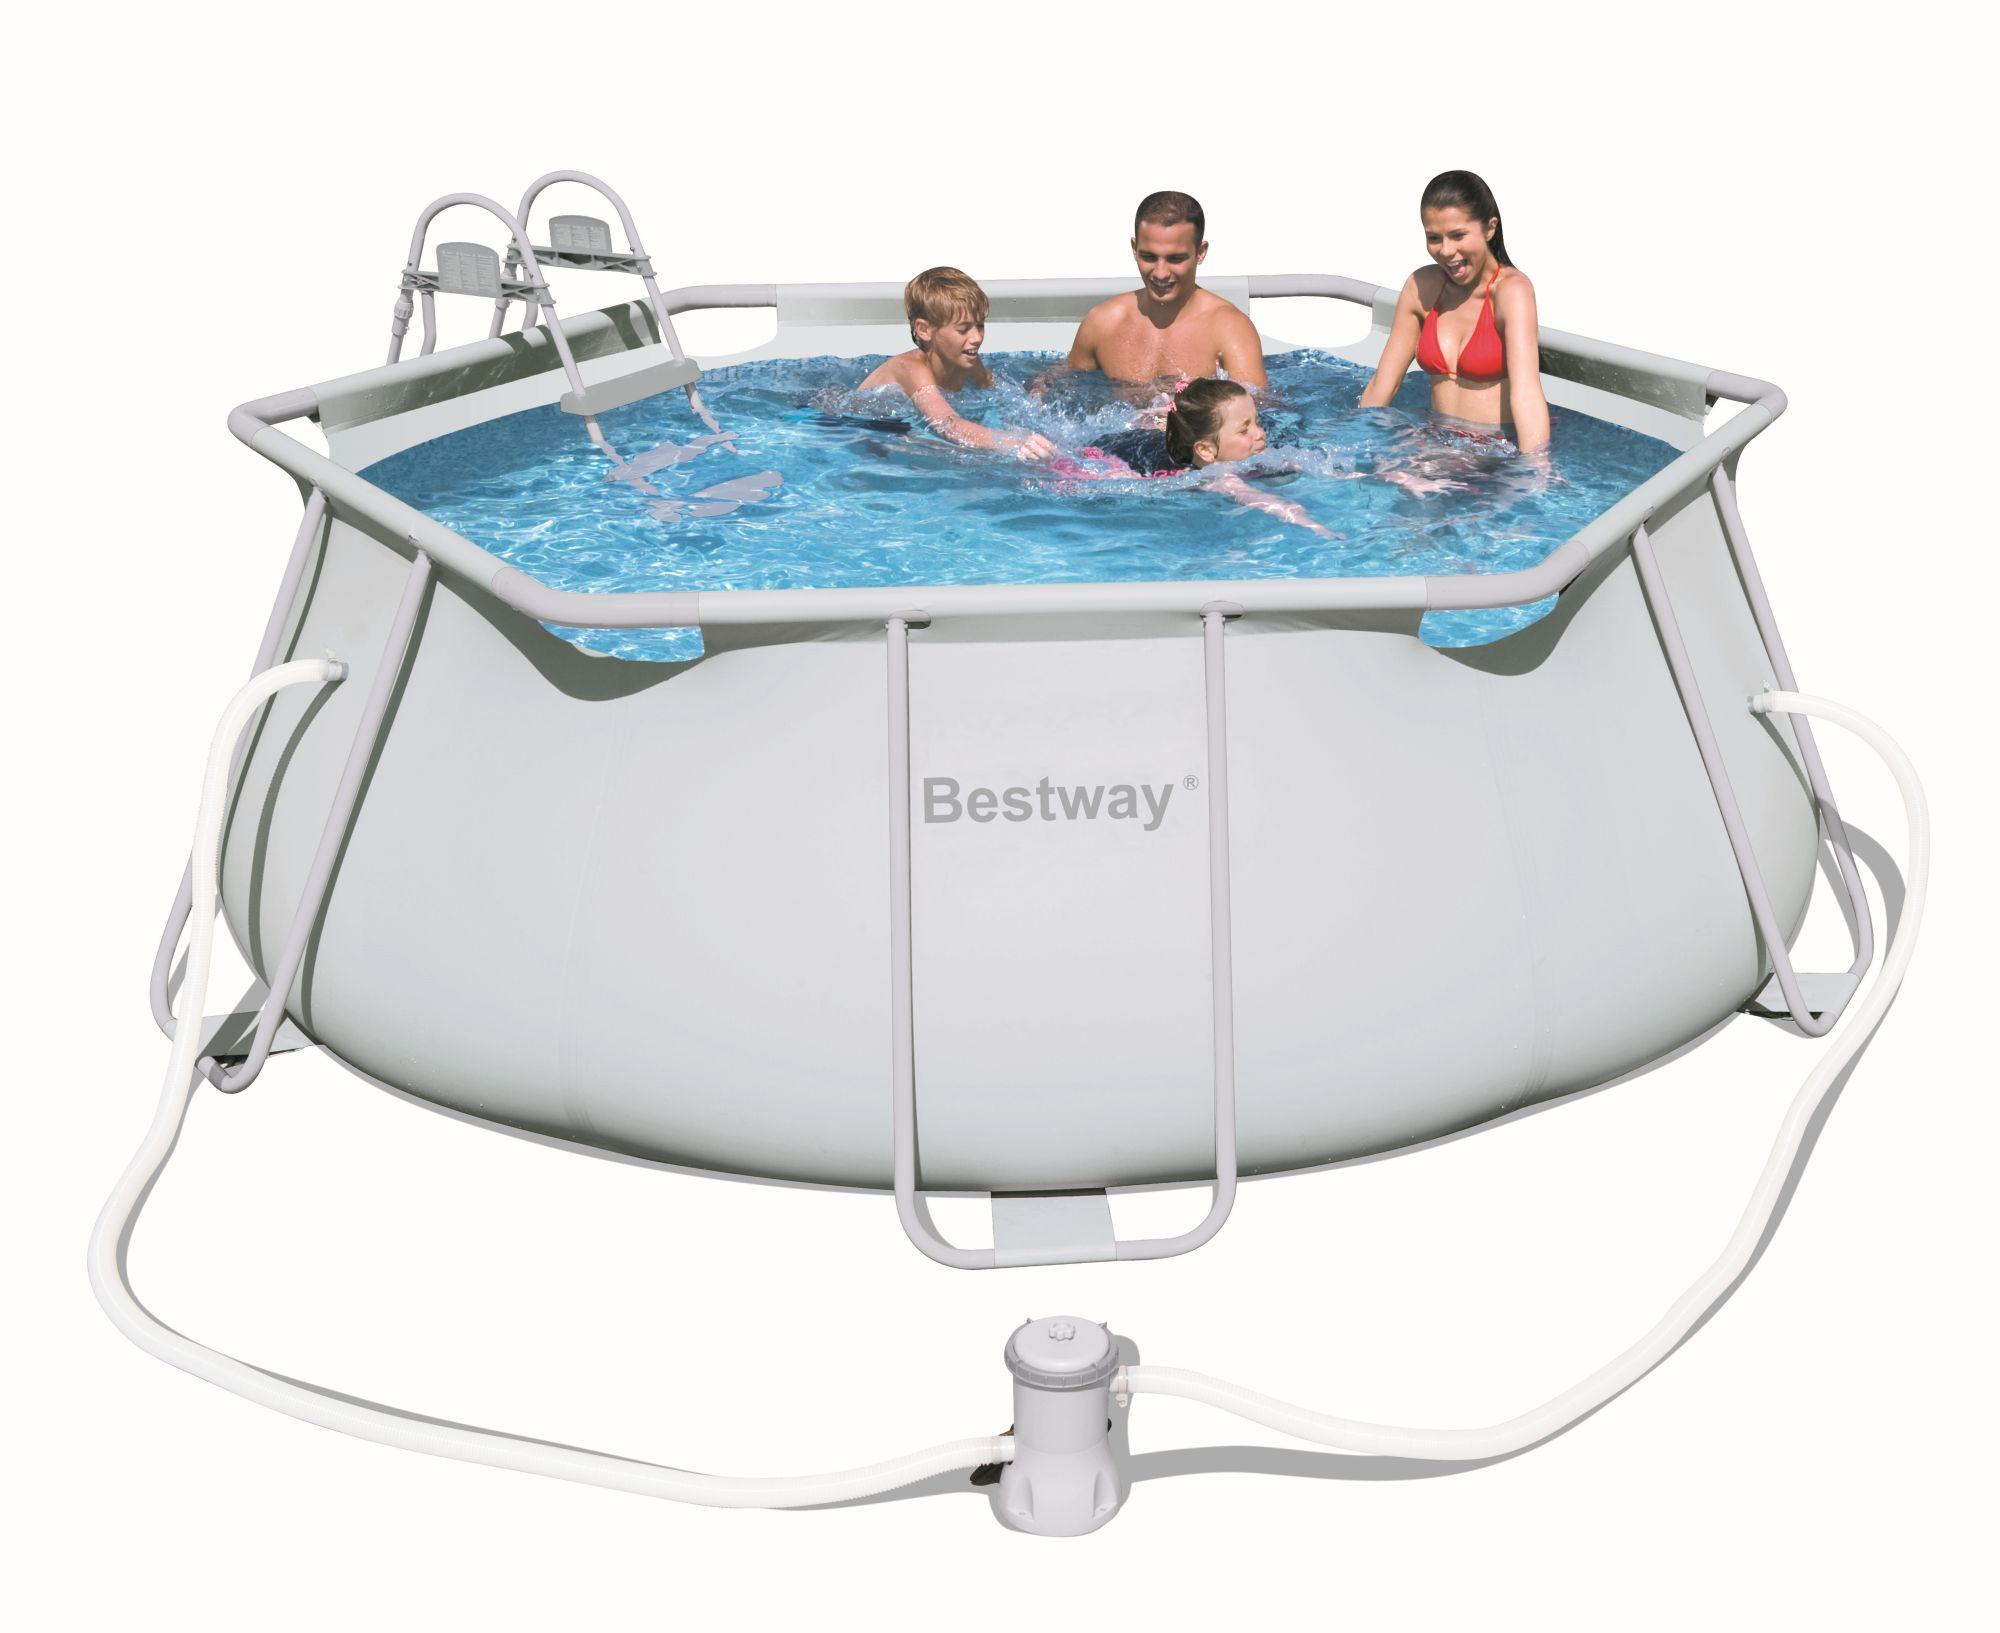 Foto piscina ultrareforzada steel pro 427 x 122 cm bestway for Garten pool 457x122